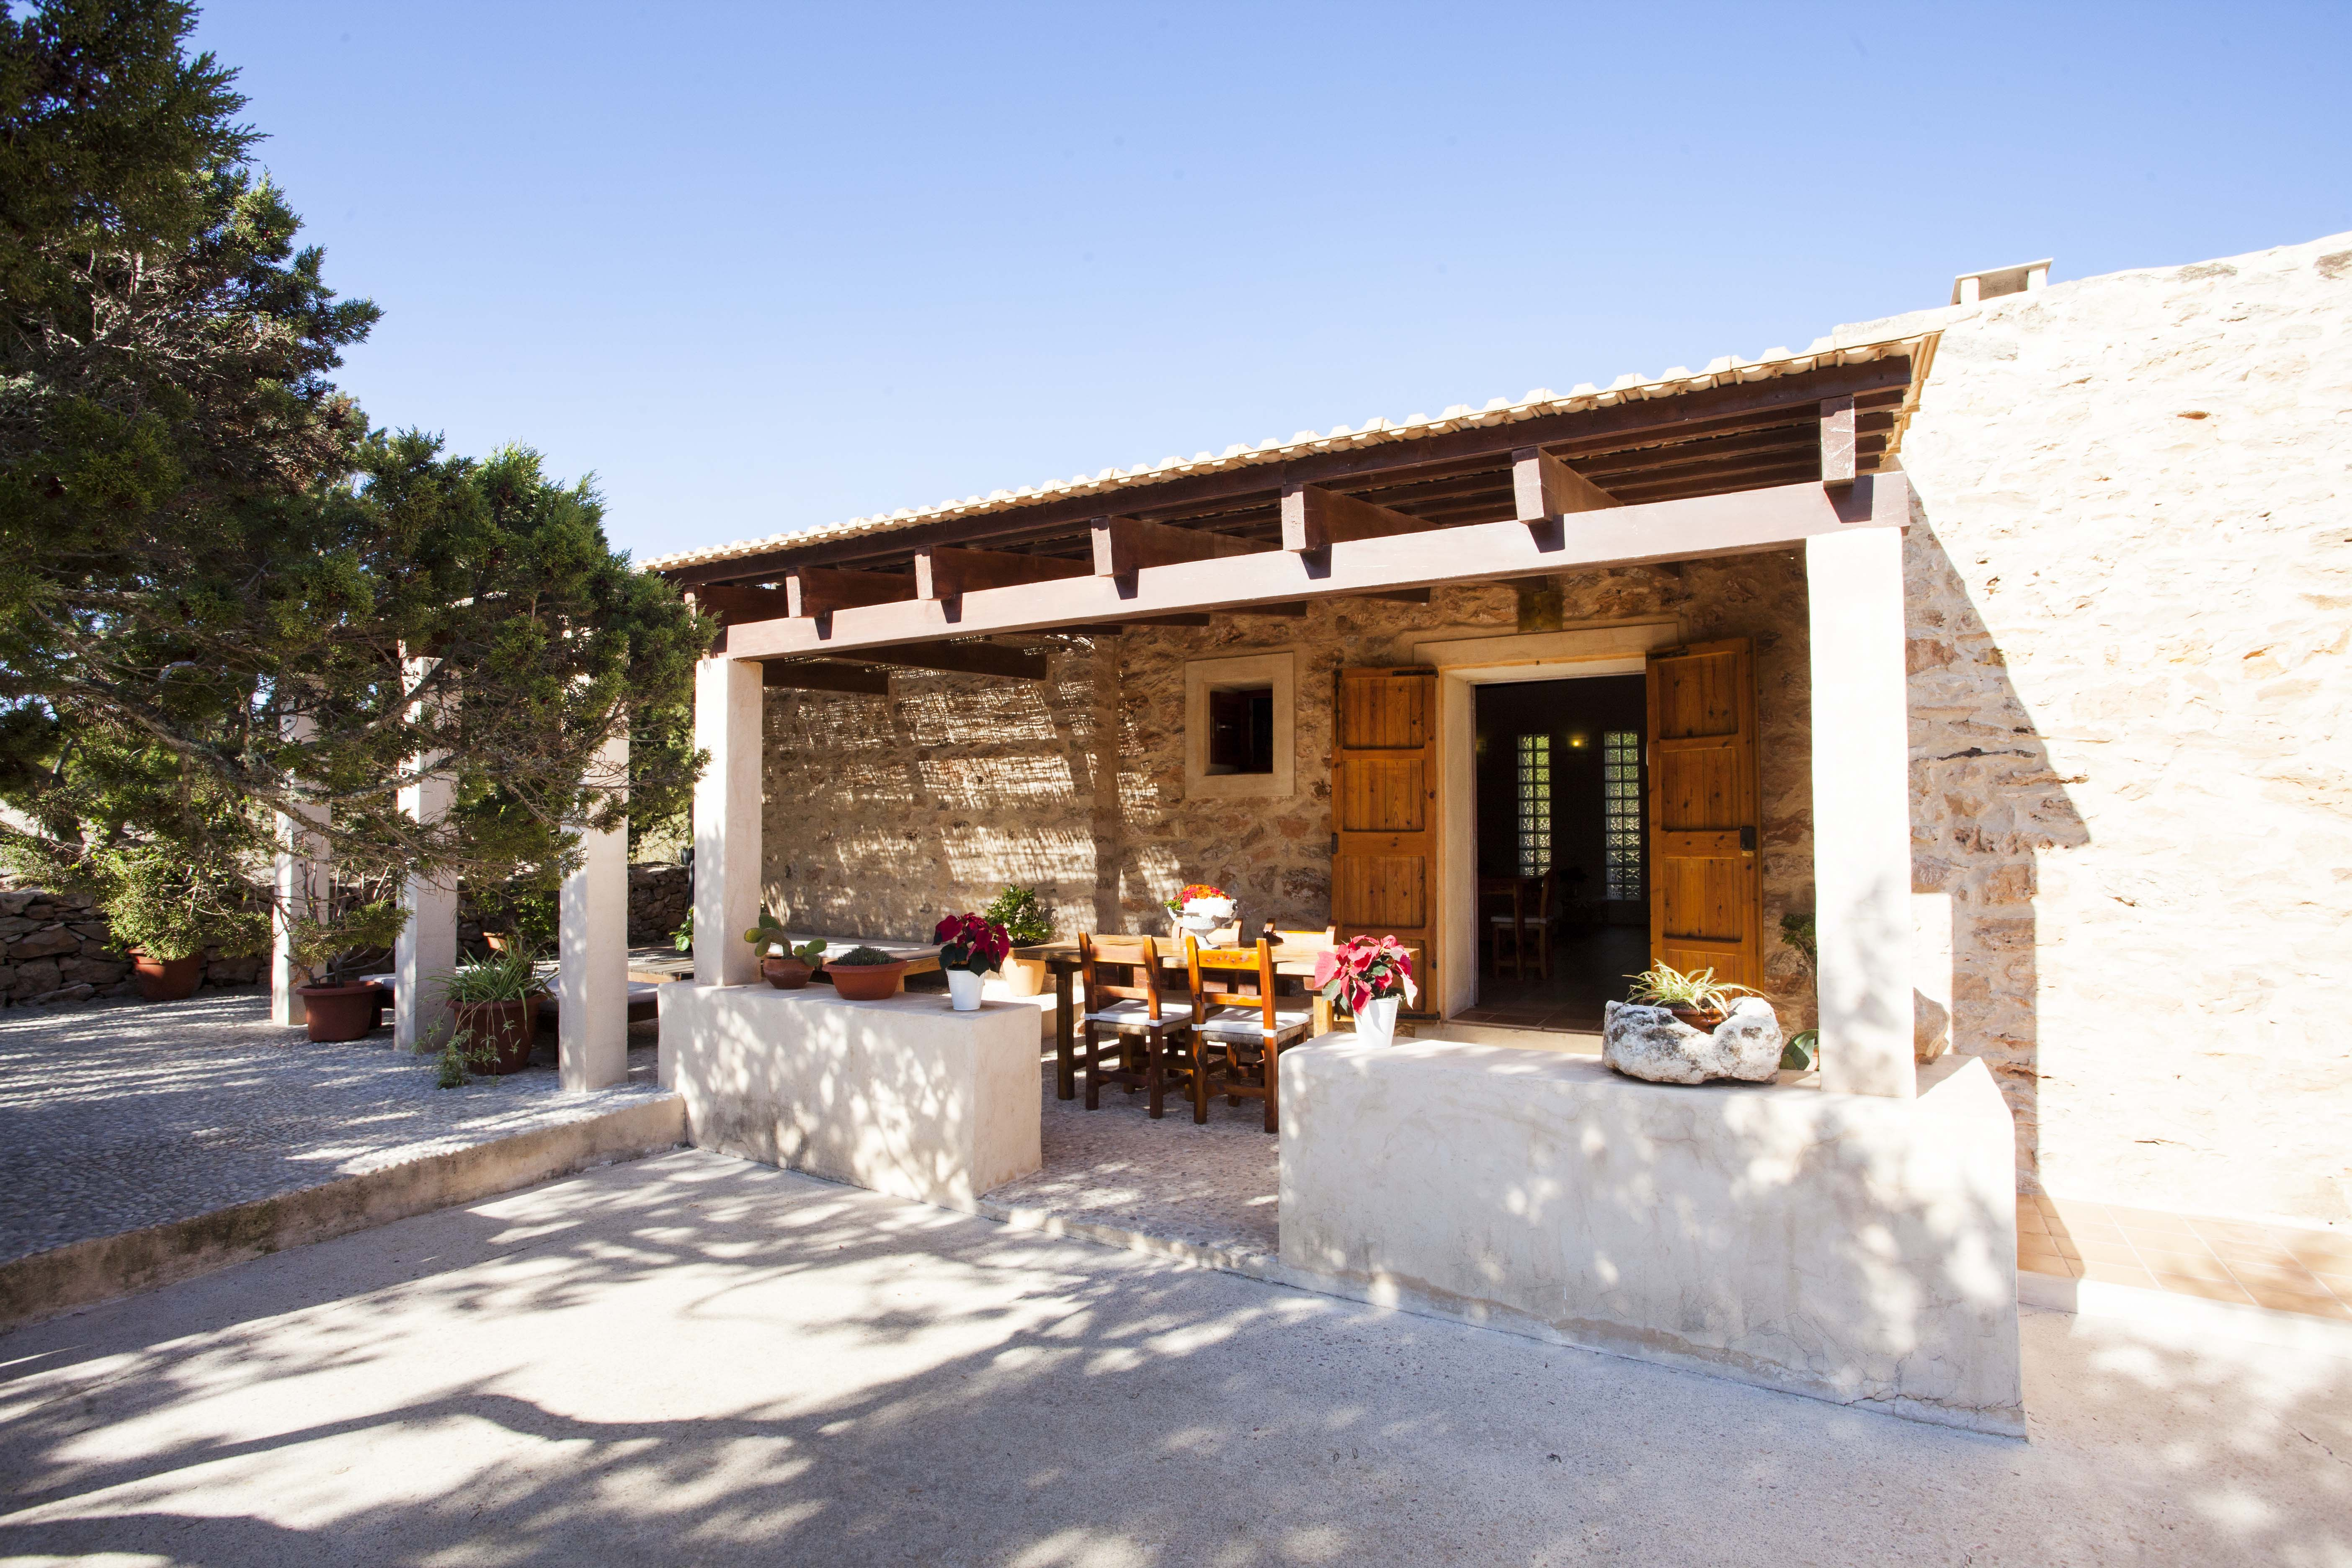 010402-spain-balearic-islands-formentera-luxury-villa-outdoor-exterior-porche-porch-1